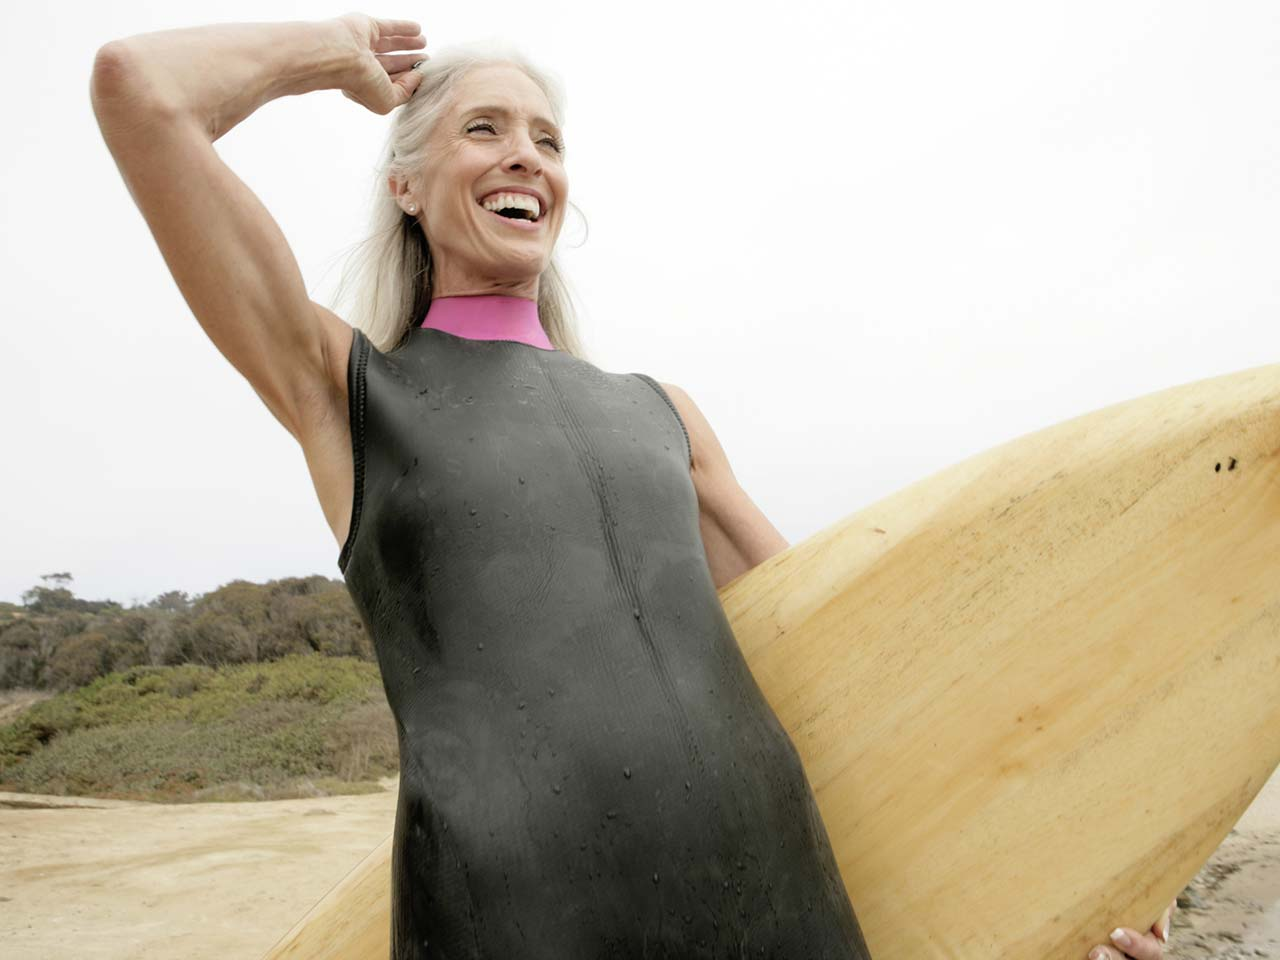 Older woman surfing to stay fit